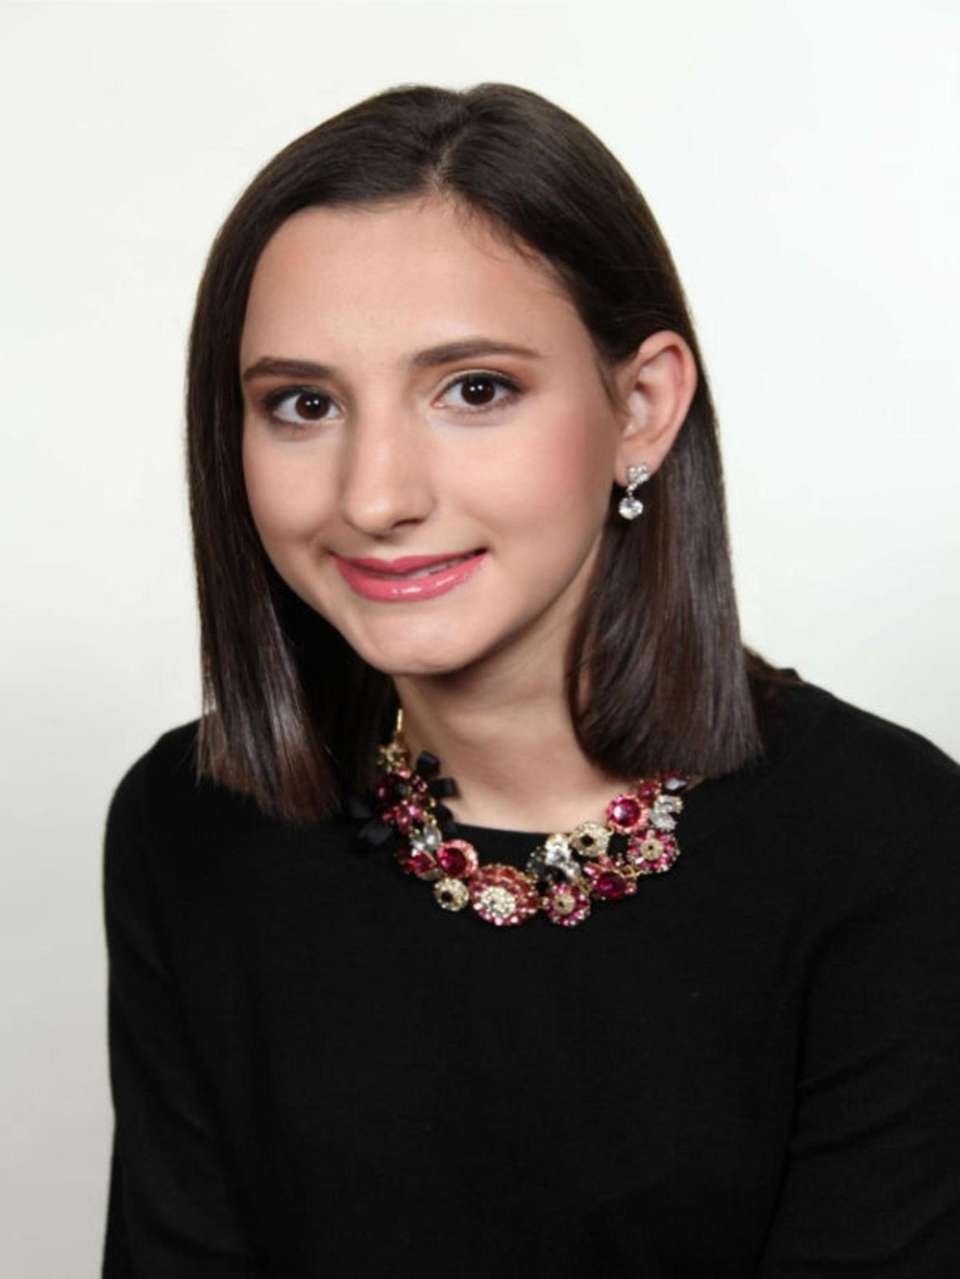 MIDRESHET-SHALHEVET HIGH SCHOOL, GABRIELLA KOEGEL Hometown: Brooklyn GPA: